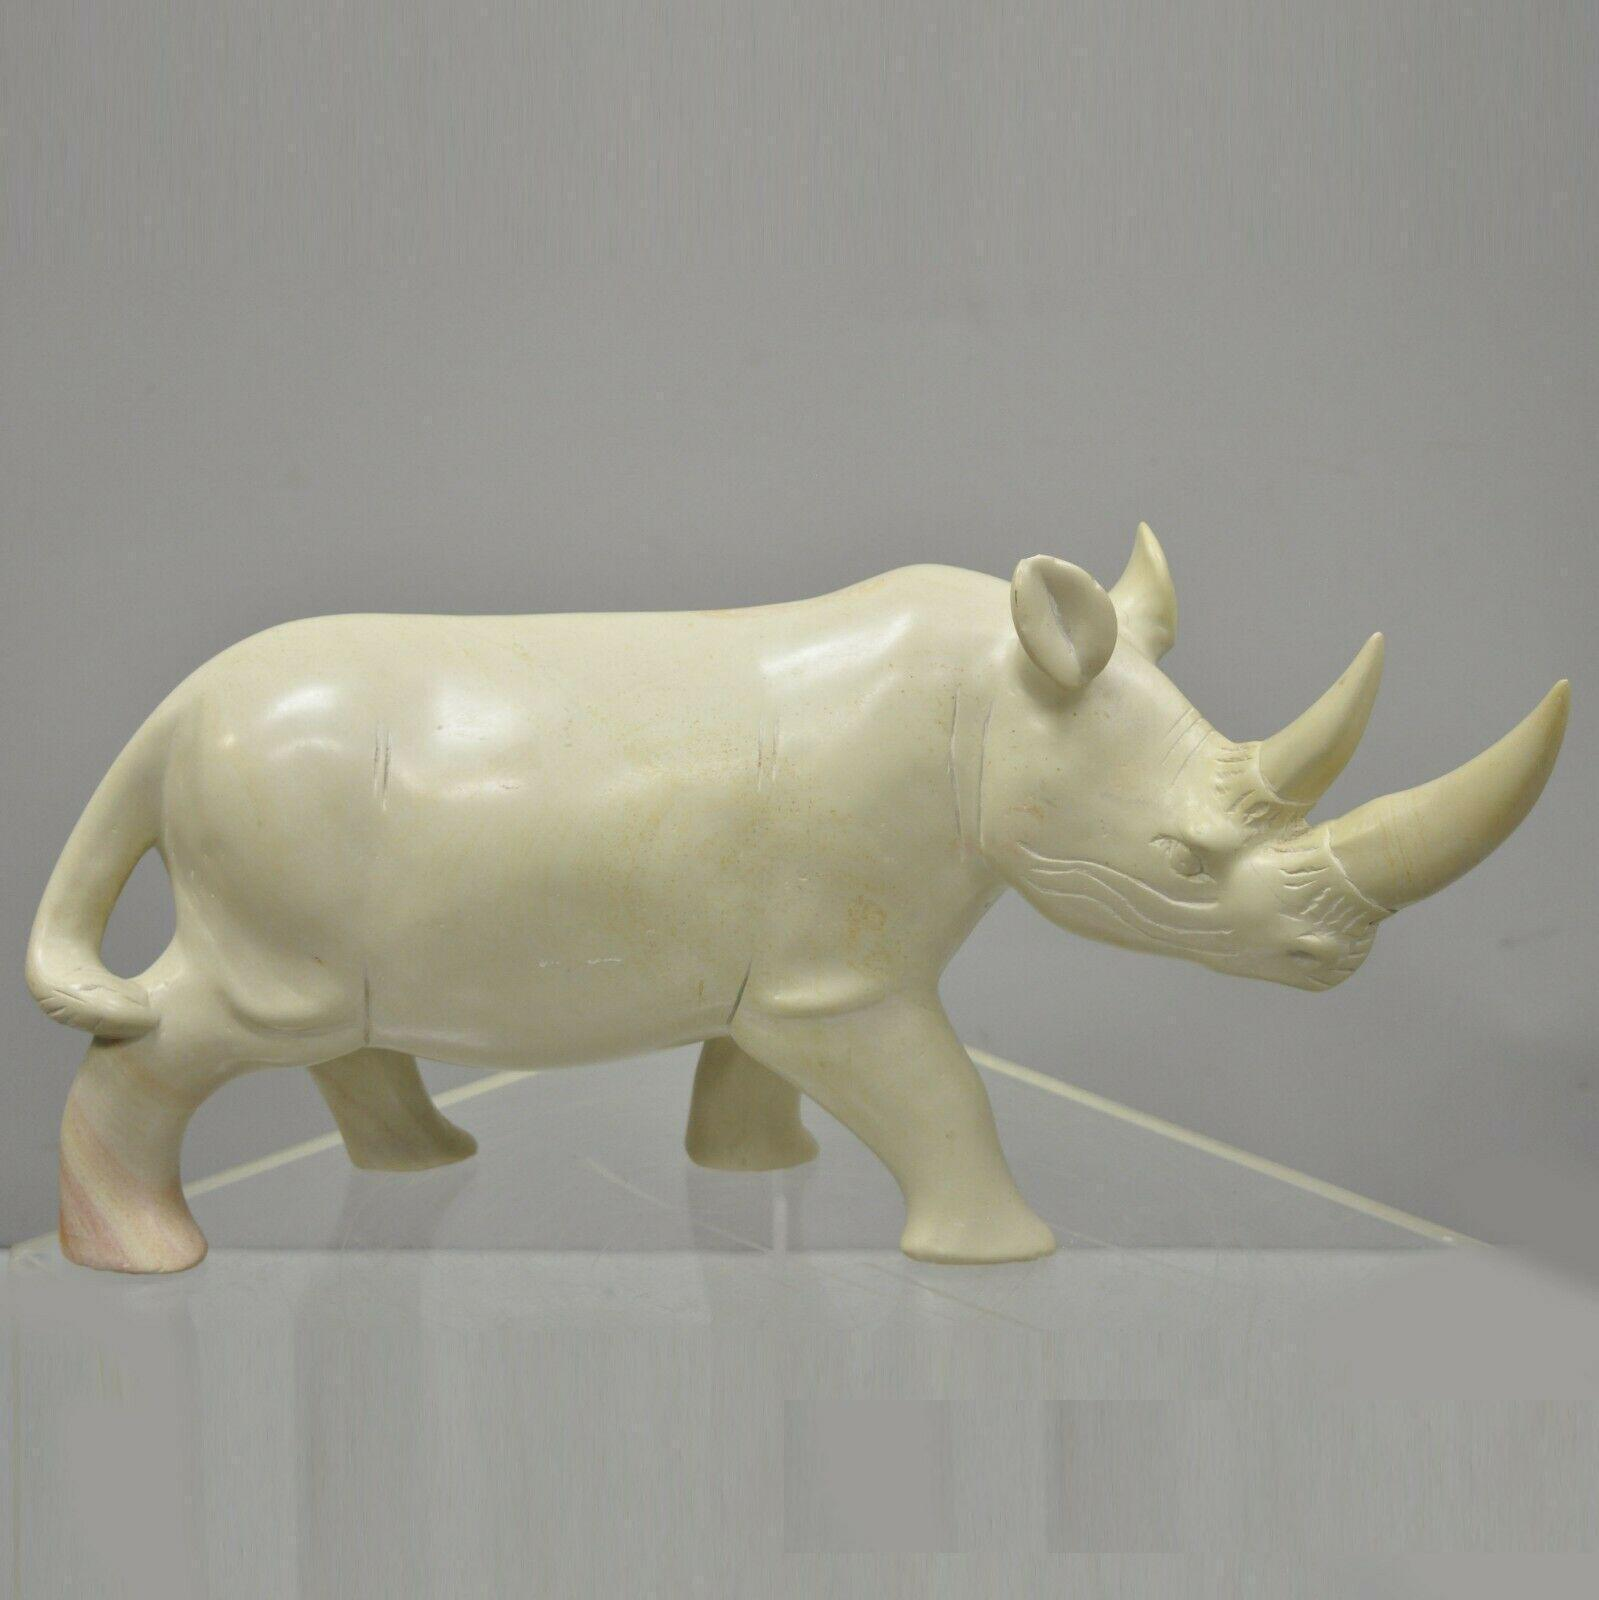 Blue Figurine Sculpture 2 Inches Height x 3 Inches Long Soapstone African Rhino SS22 Handmade in Kenya